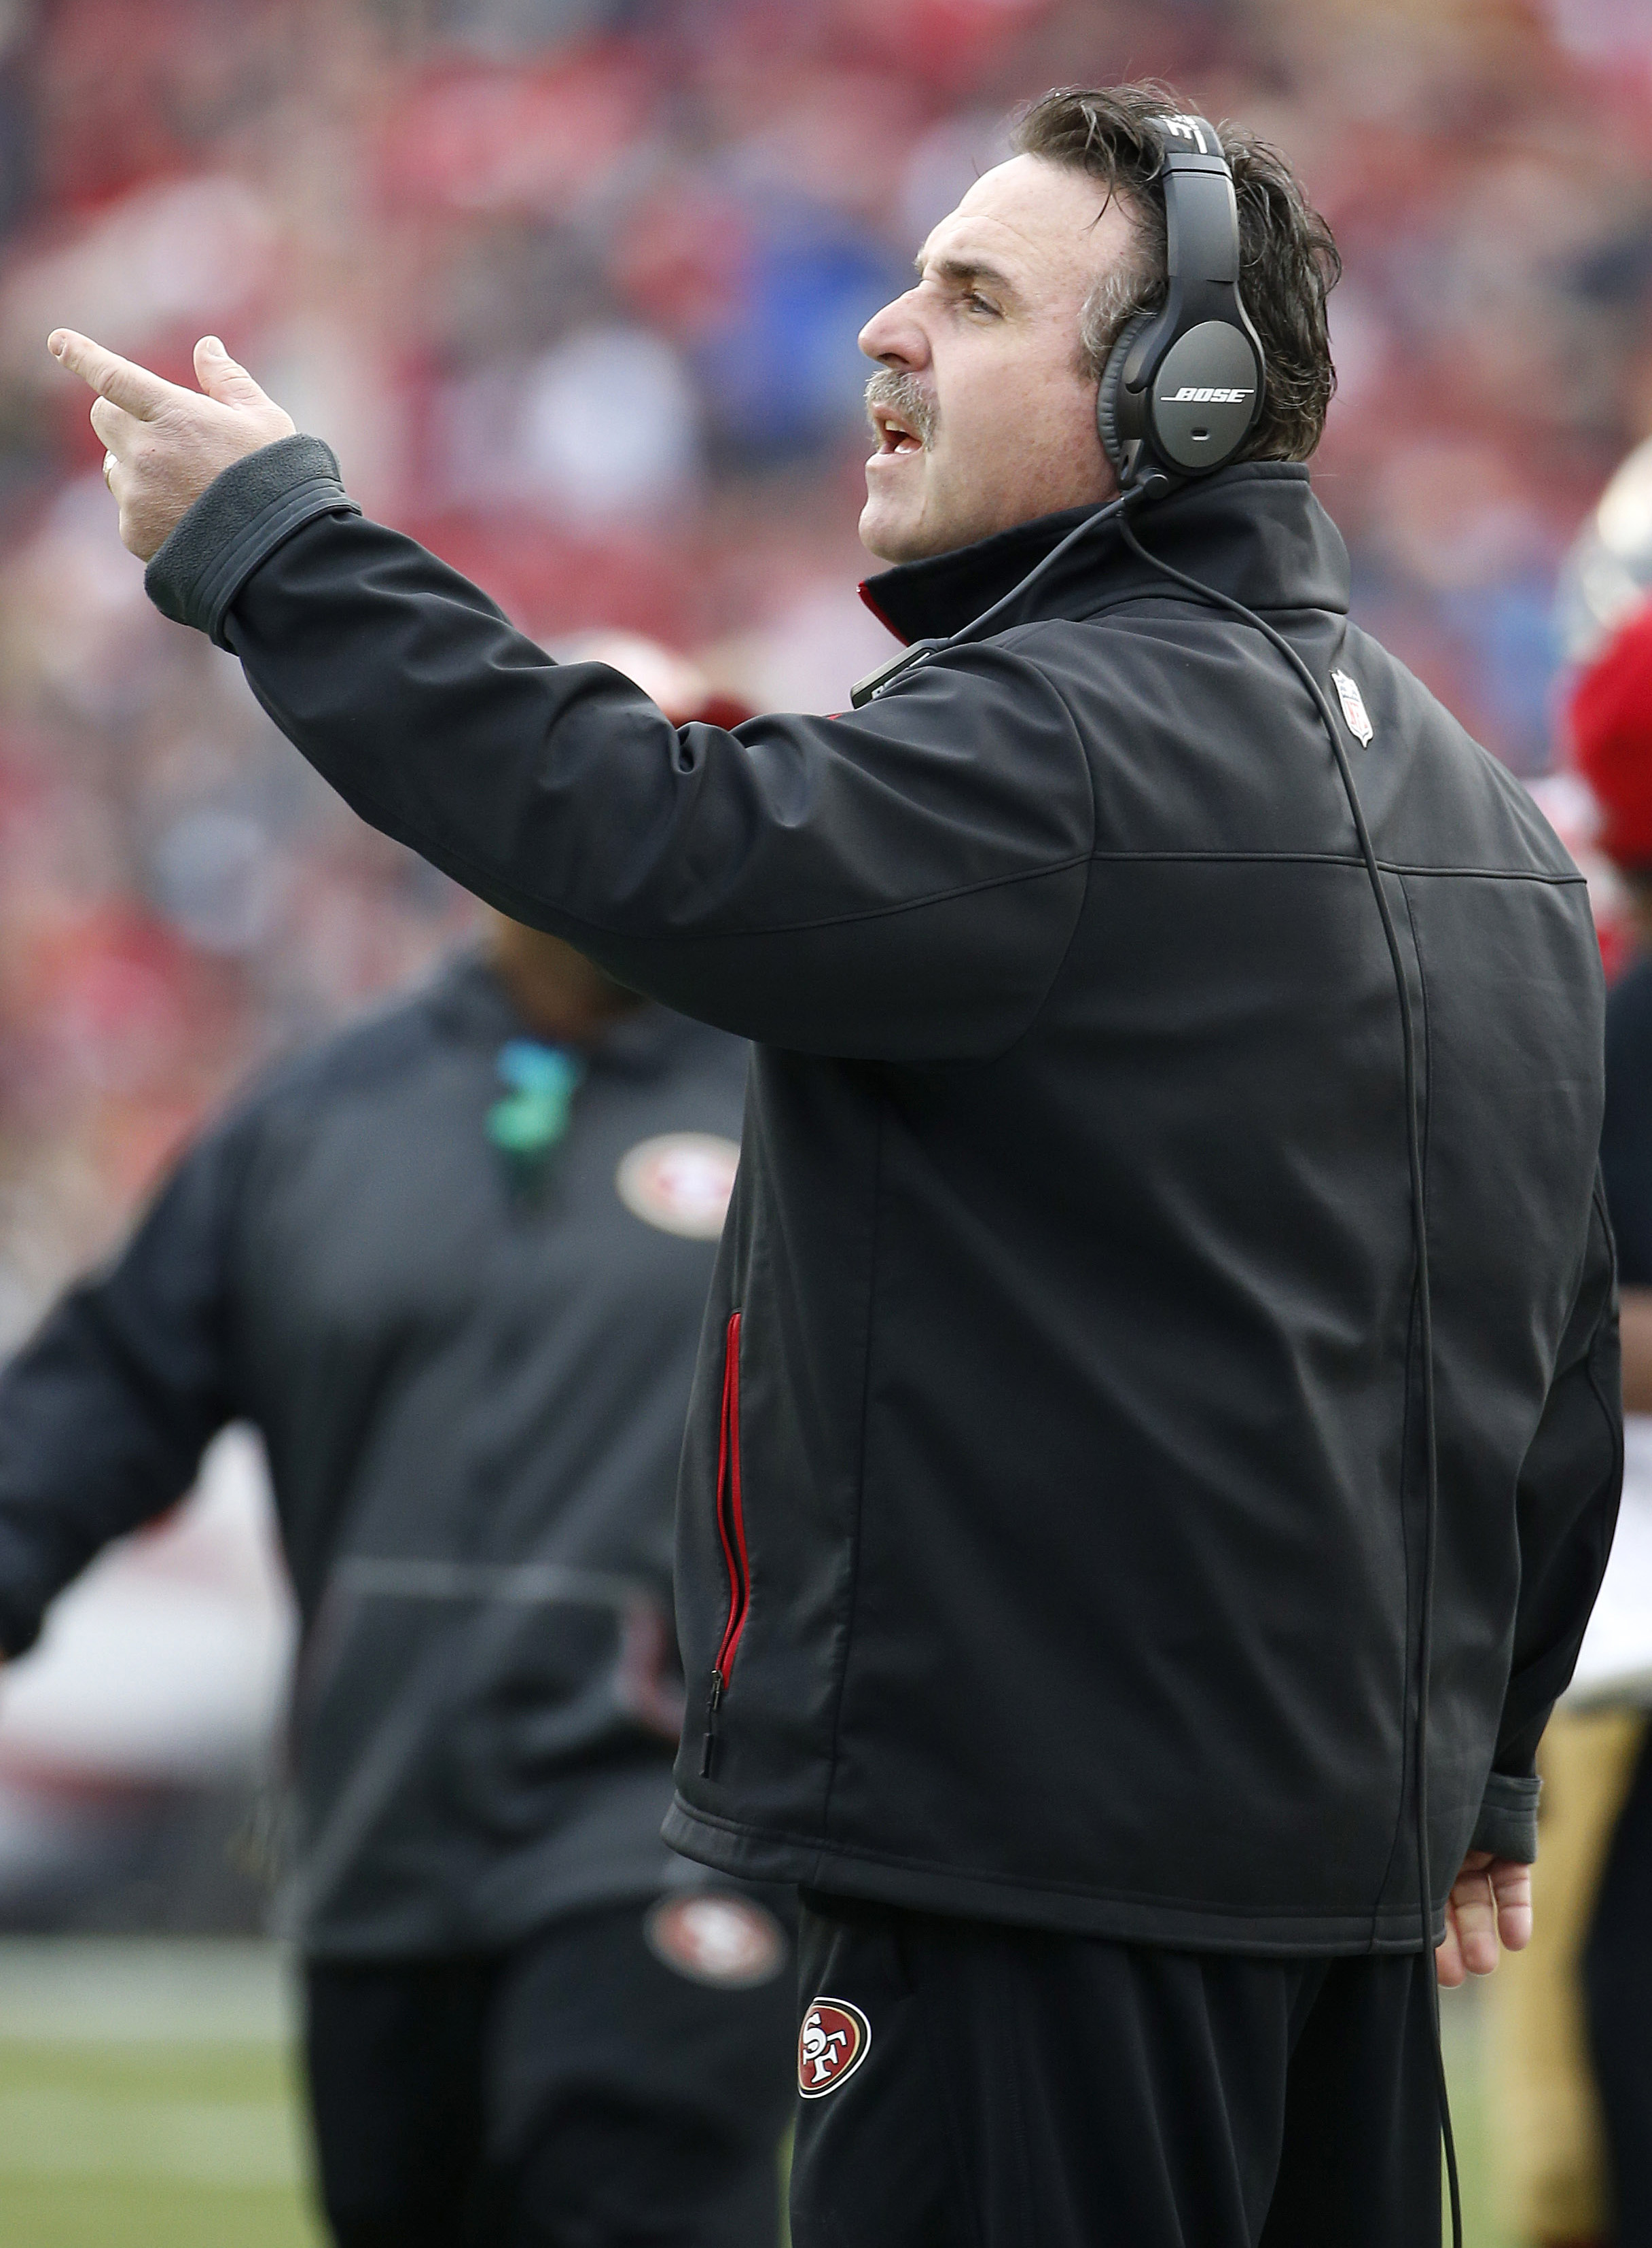 San Francisco 49ers head coach Jim Tomsula gestures during the first half of an NFL football game between the 49ers and the St. Louis Rams in Santa Clara, Calif., Sunday, Jan. 3, 2016. (AP Photo/Tony Avelar)